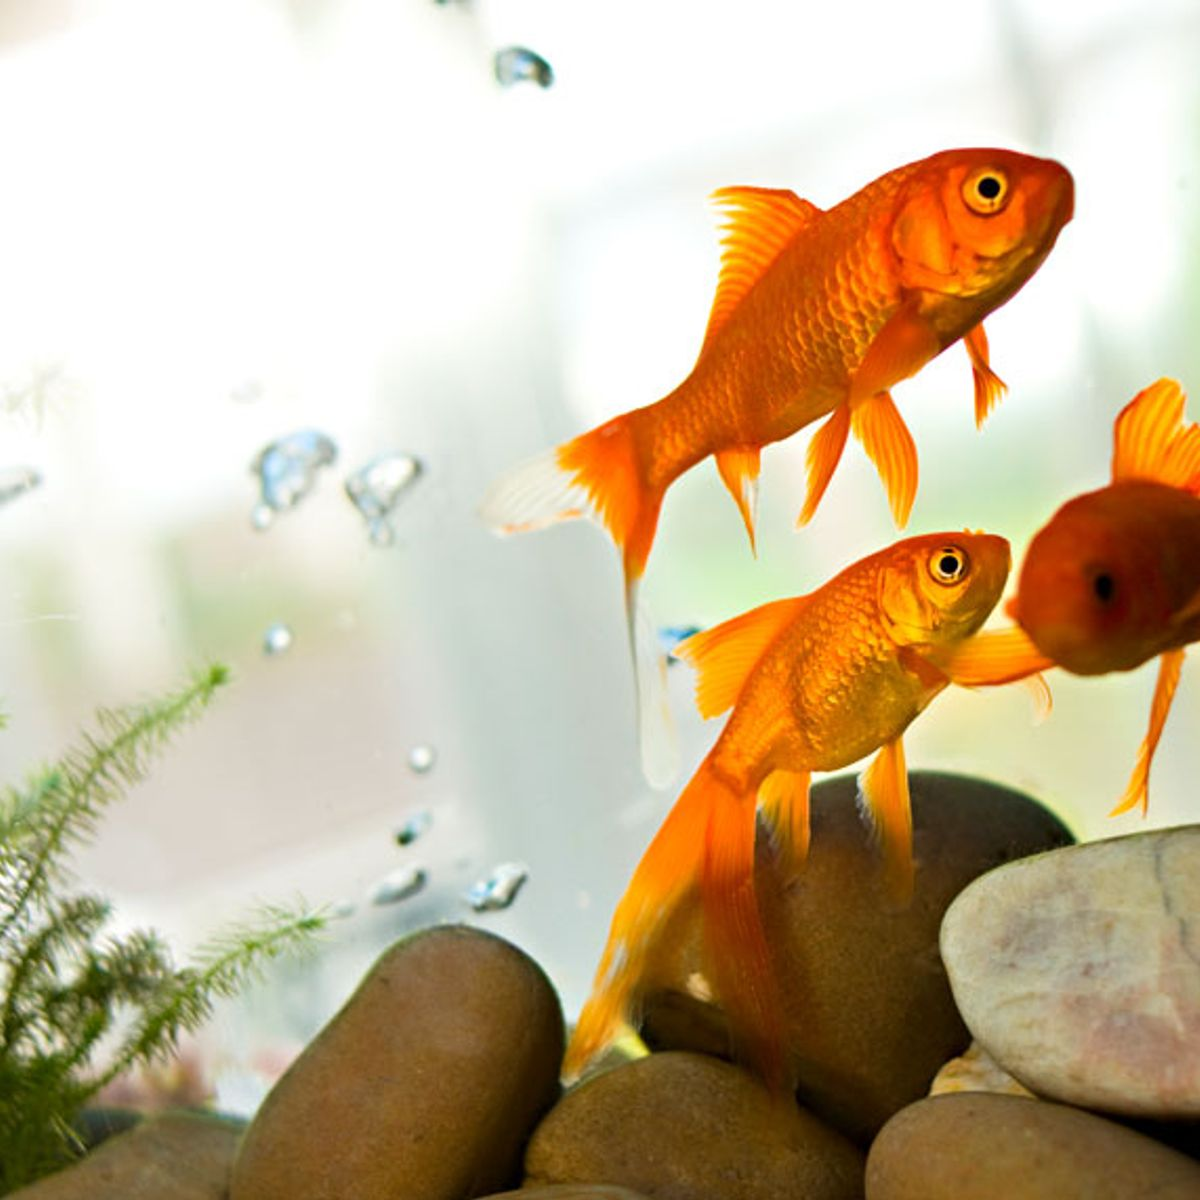 Is it silly to mourn a goldfish — or to wonder what our pets are thinking in general?